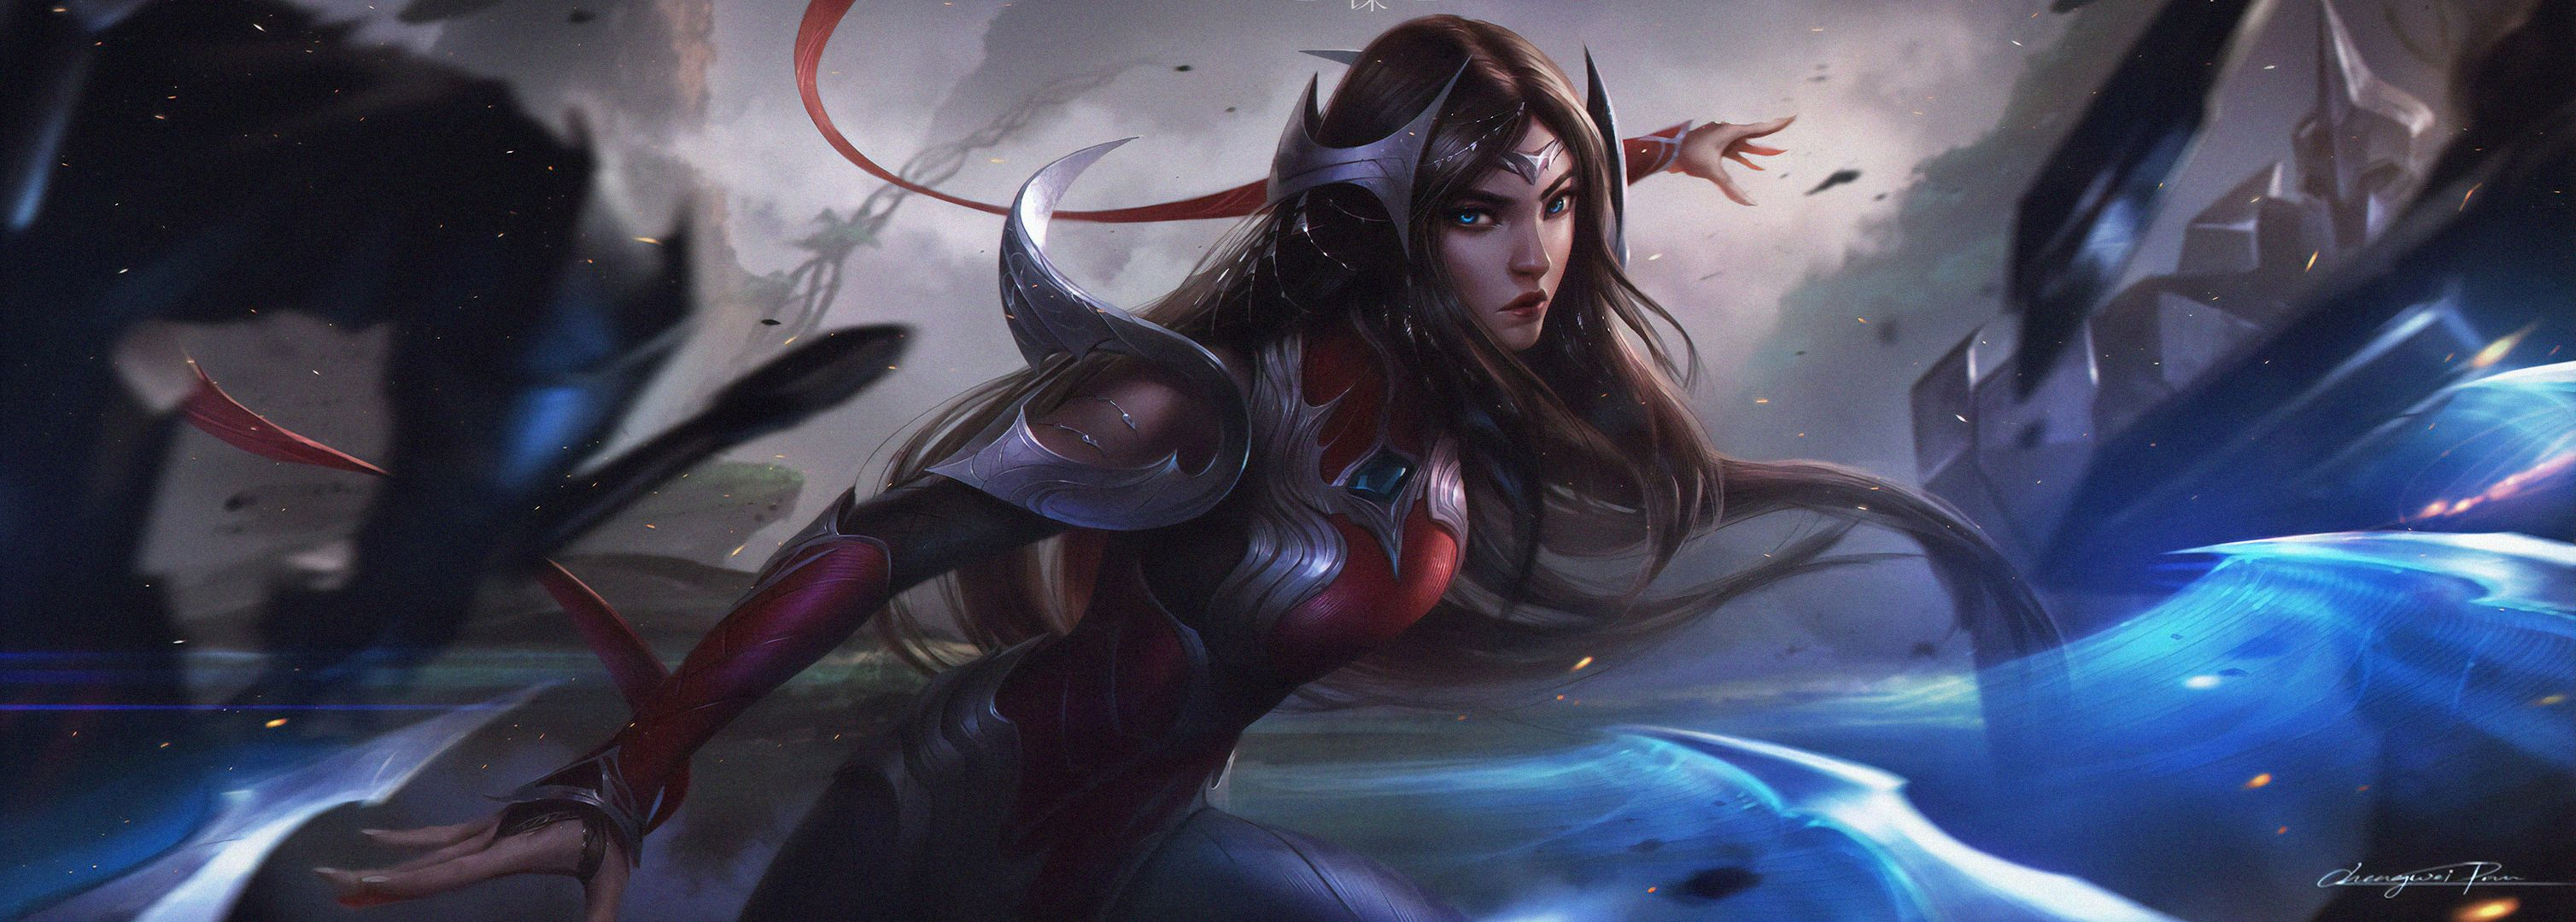 Irelia Wallpapers Top Free Irelia Backgrounds Wallpaperaccess